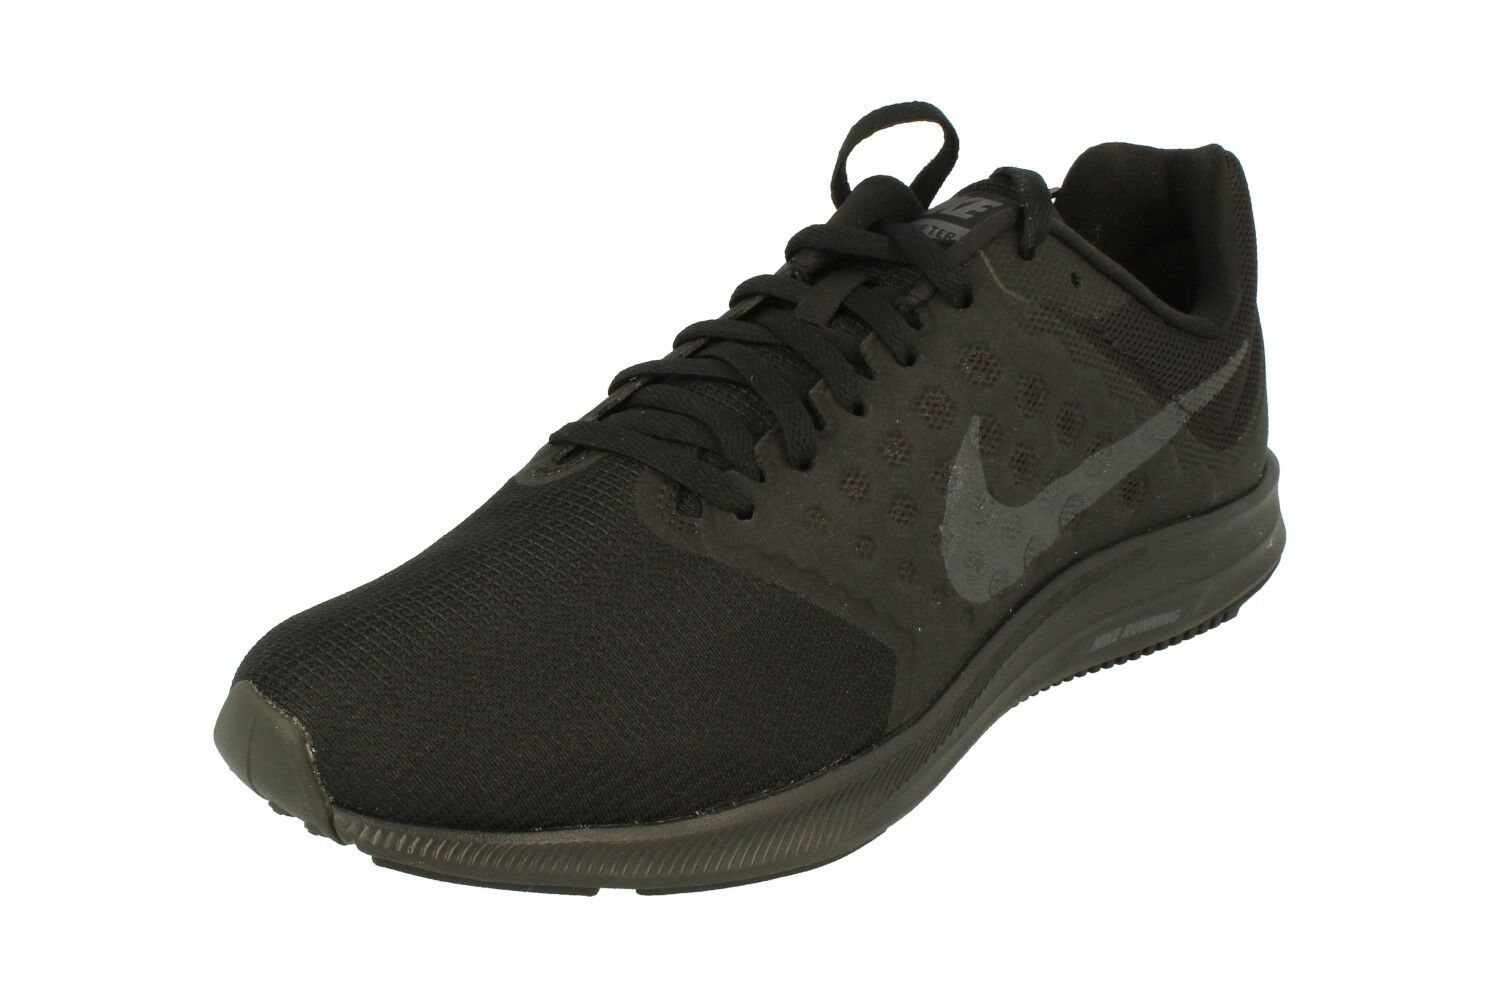 Nike Downshifter 7 Hommes Running 001 Trainers 852459 Baskets Chaussures 001 Running 9b41de